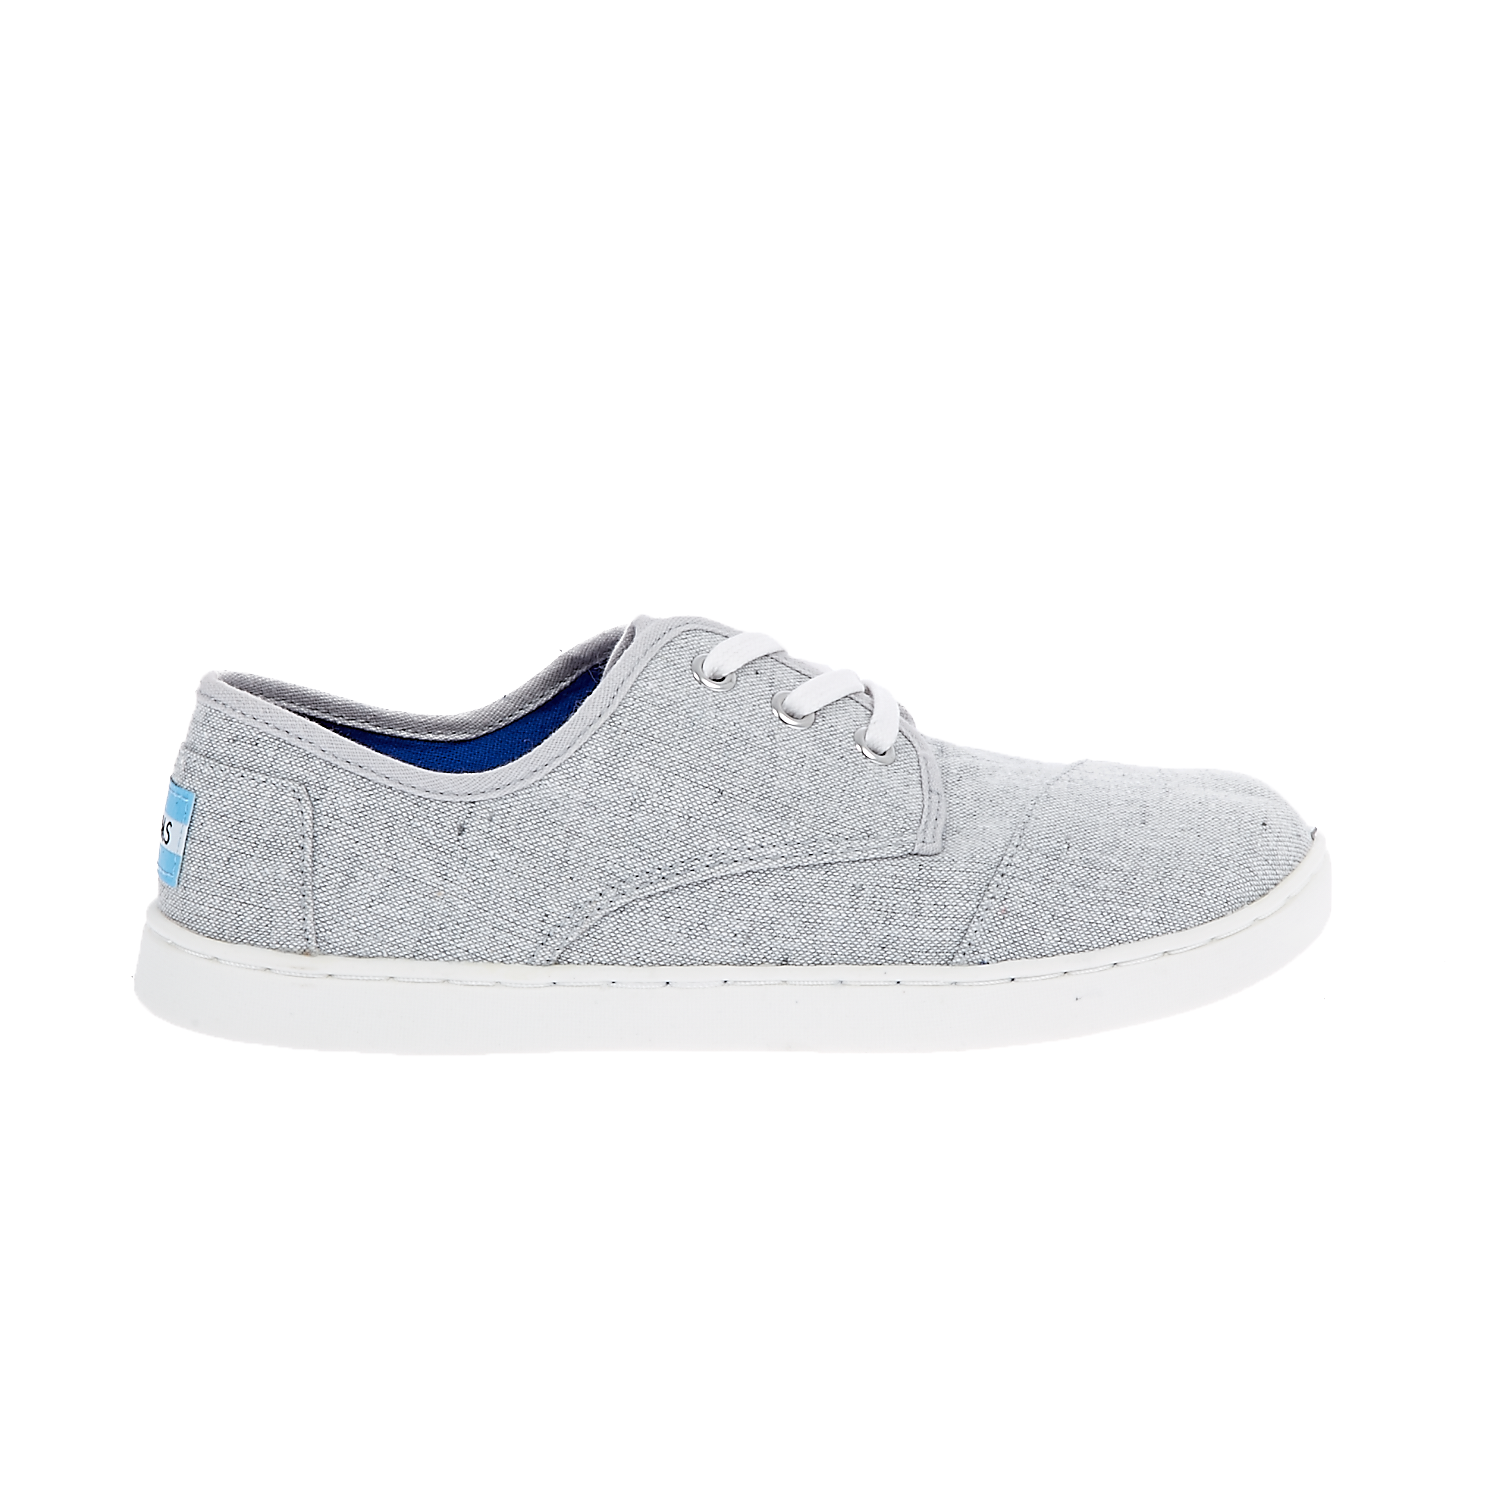 TOMS – Παιδικά sneakers TOMS γκρι